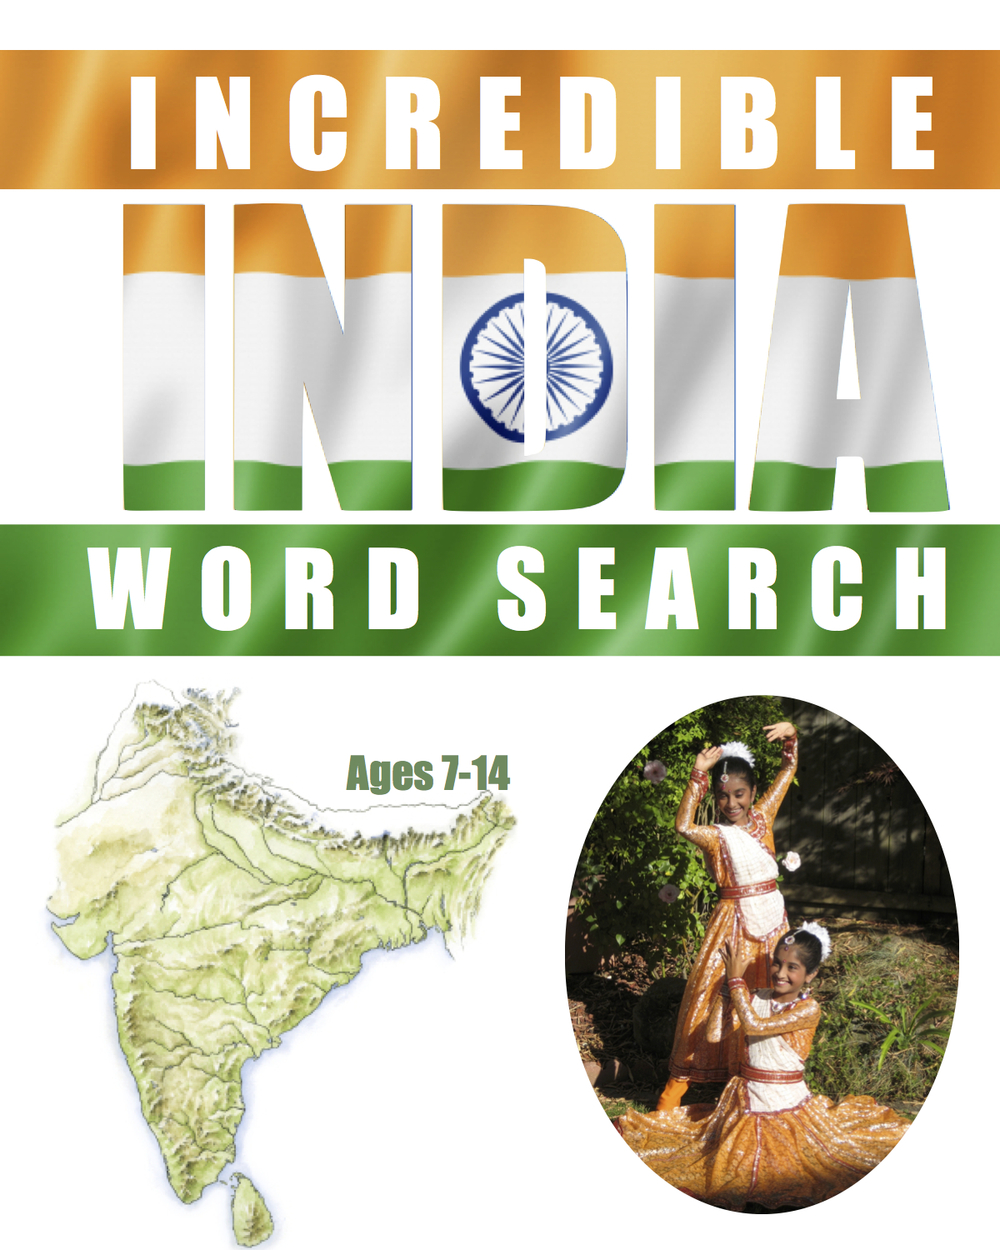 india word search front cover 8 x 10 copy.jpg